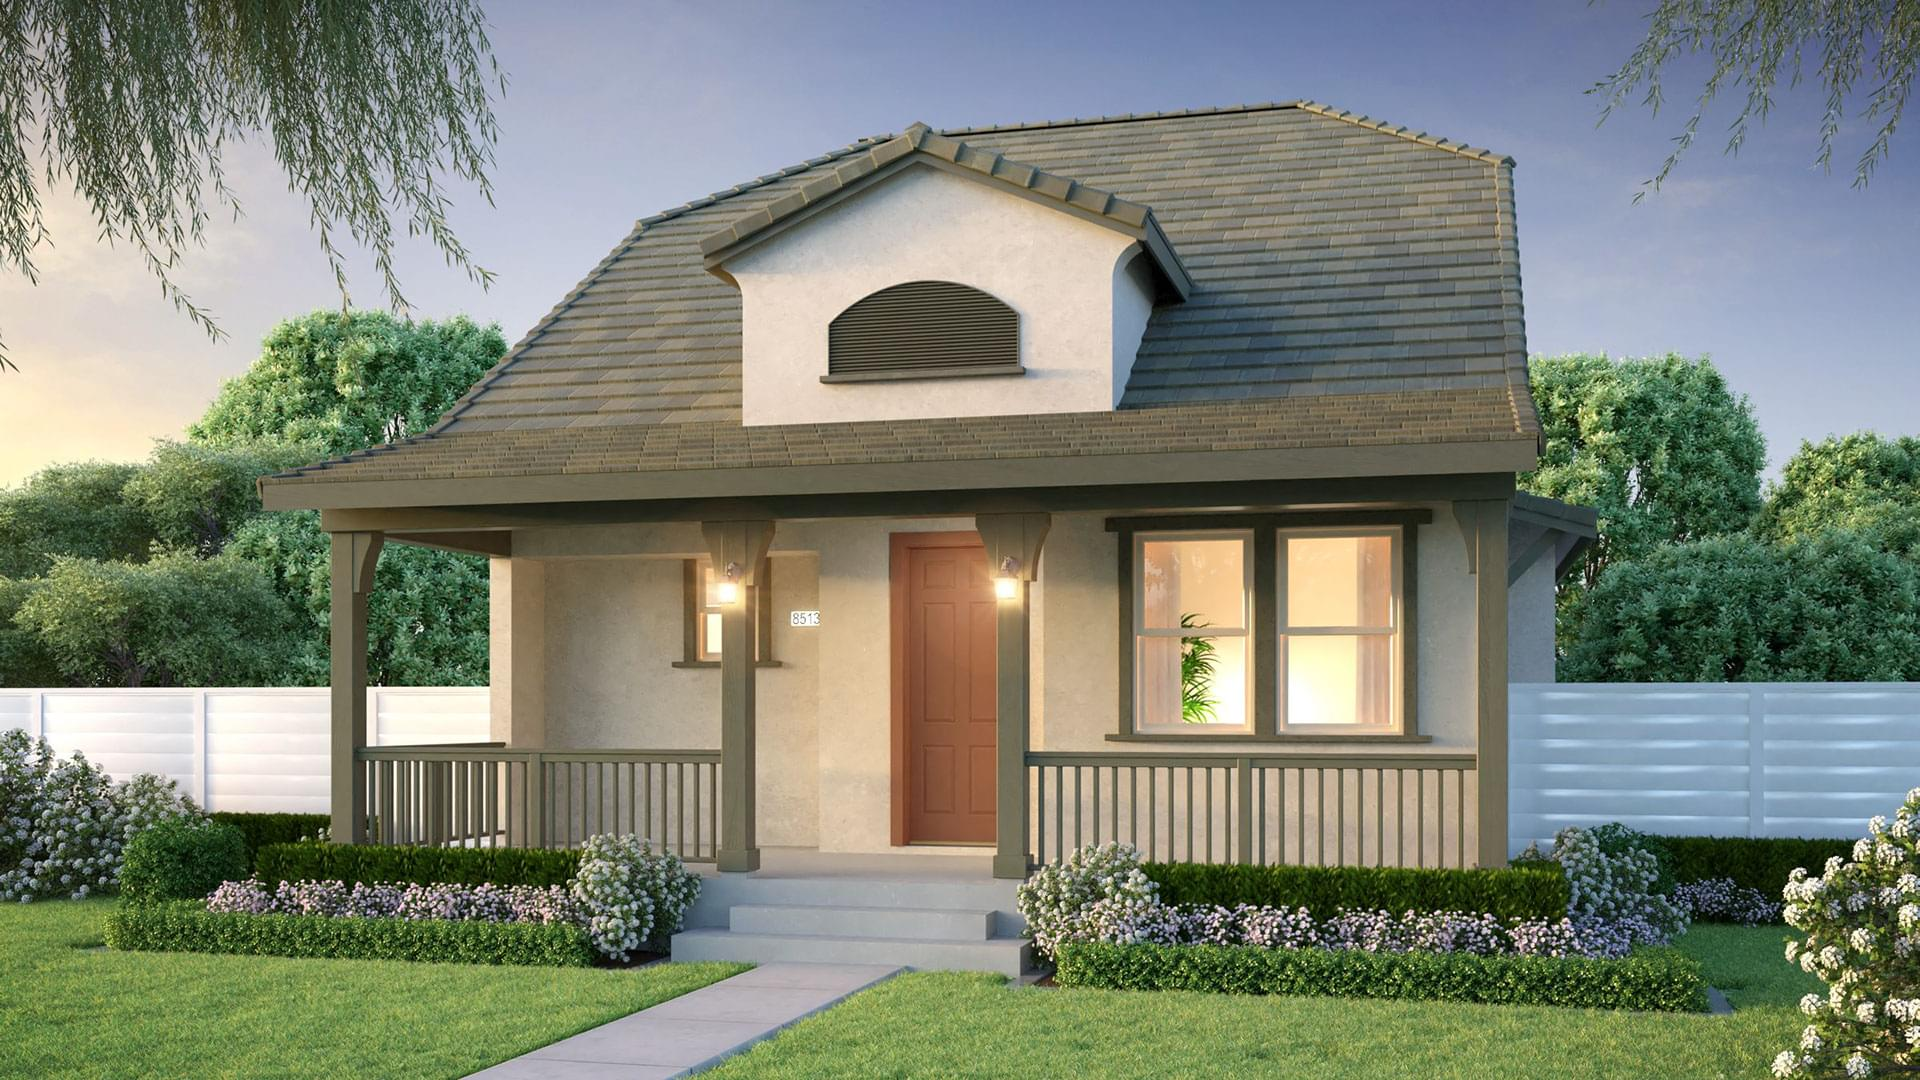 866 Hayes Street in Sonoma, CA by DeNova Homes